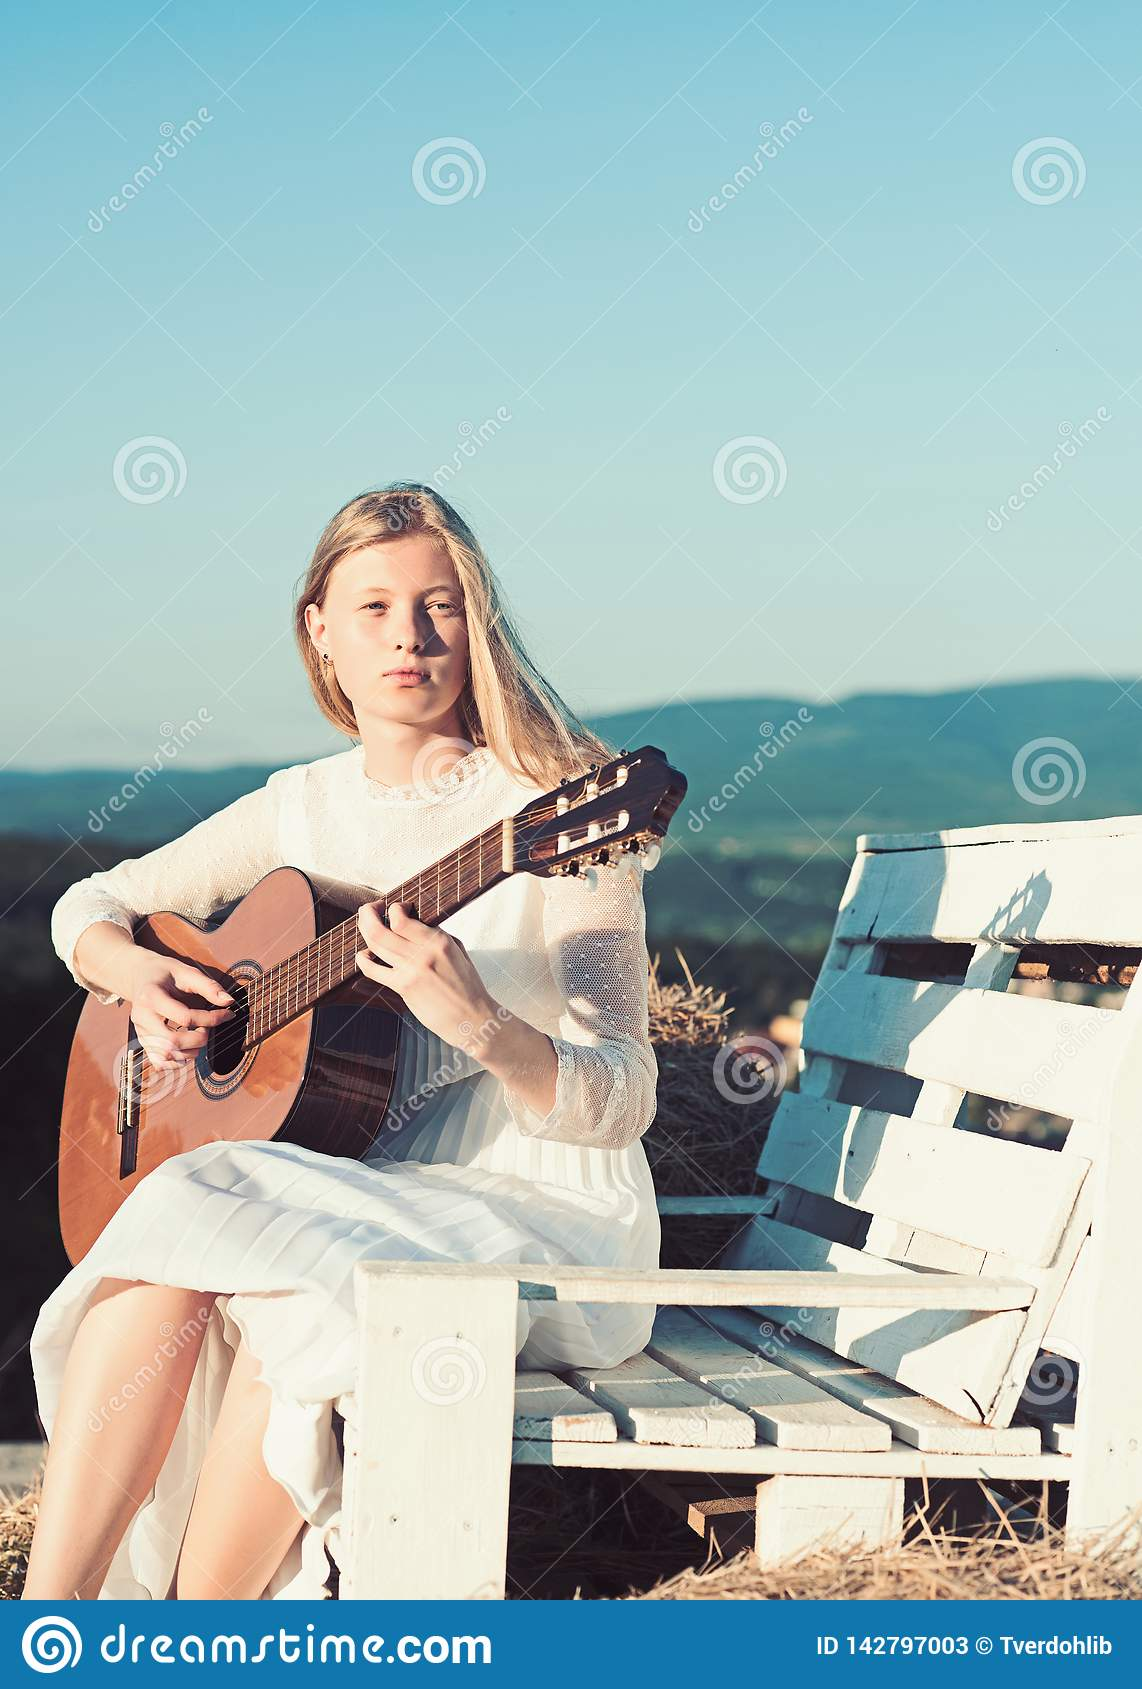 Albino girl hold acoustic guitar, string instrument. Fashion musician in white dress on sunny nature. Sensual woman play